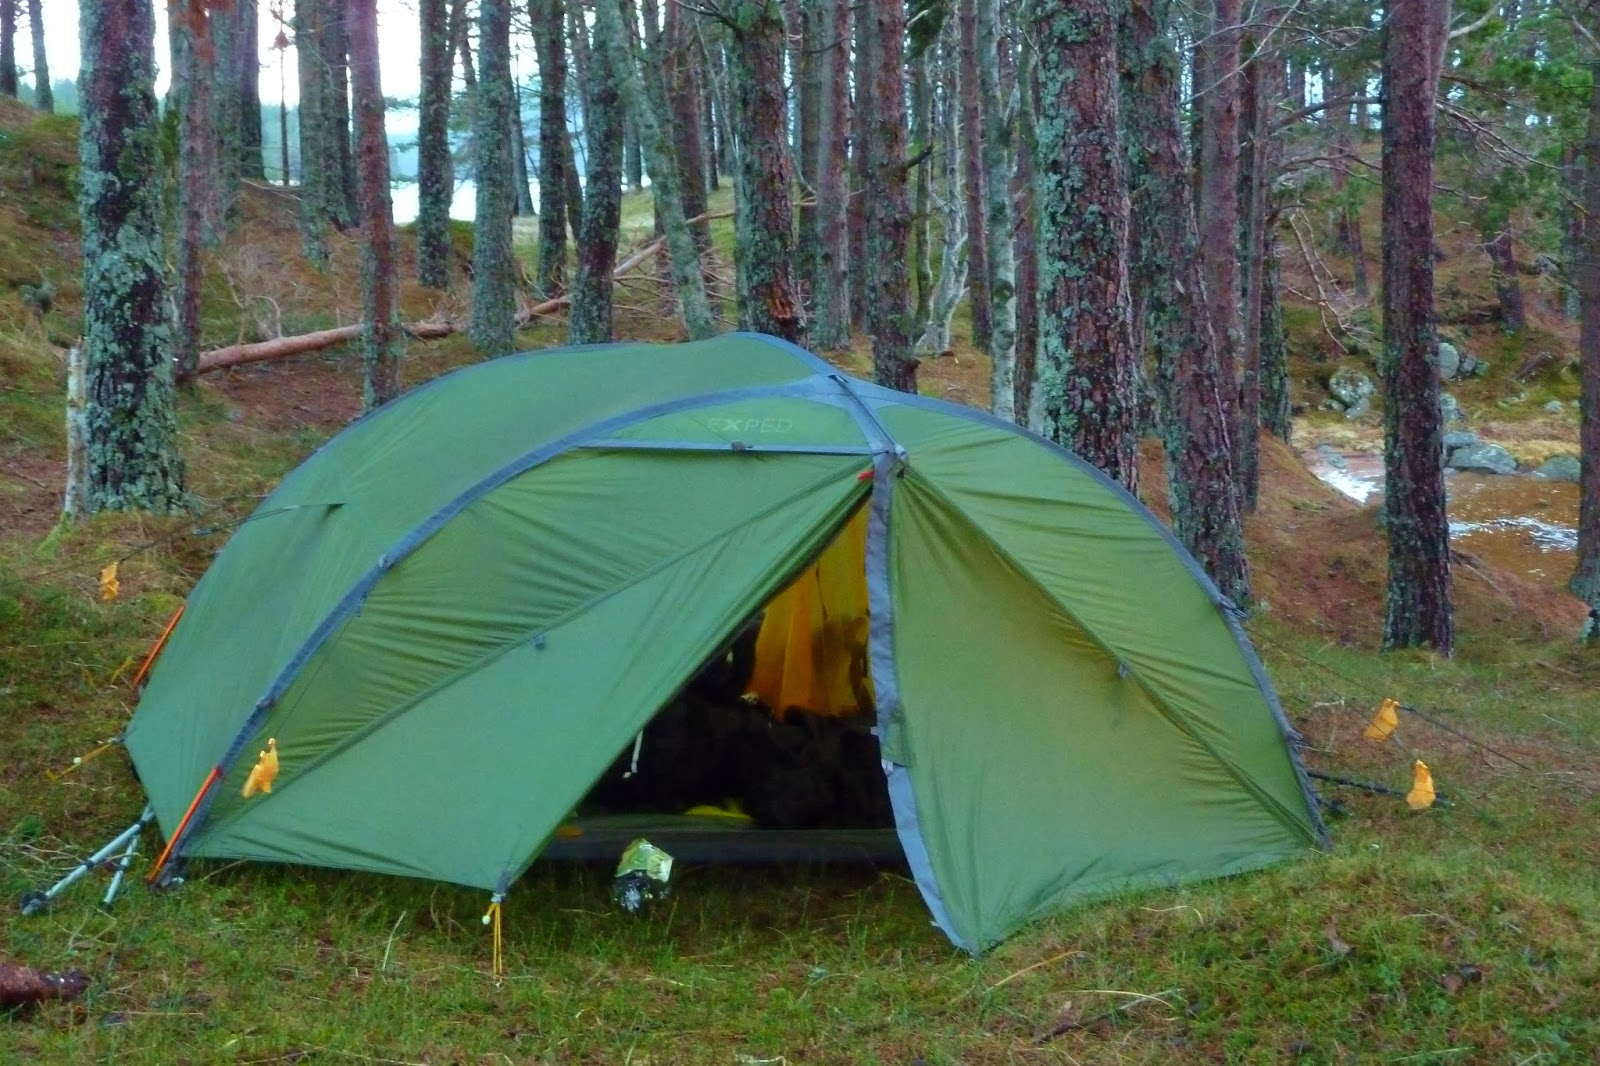 Review Of The Venus 3 Tent, The Cheetah